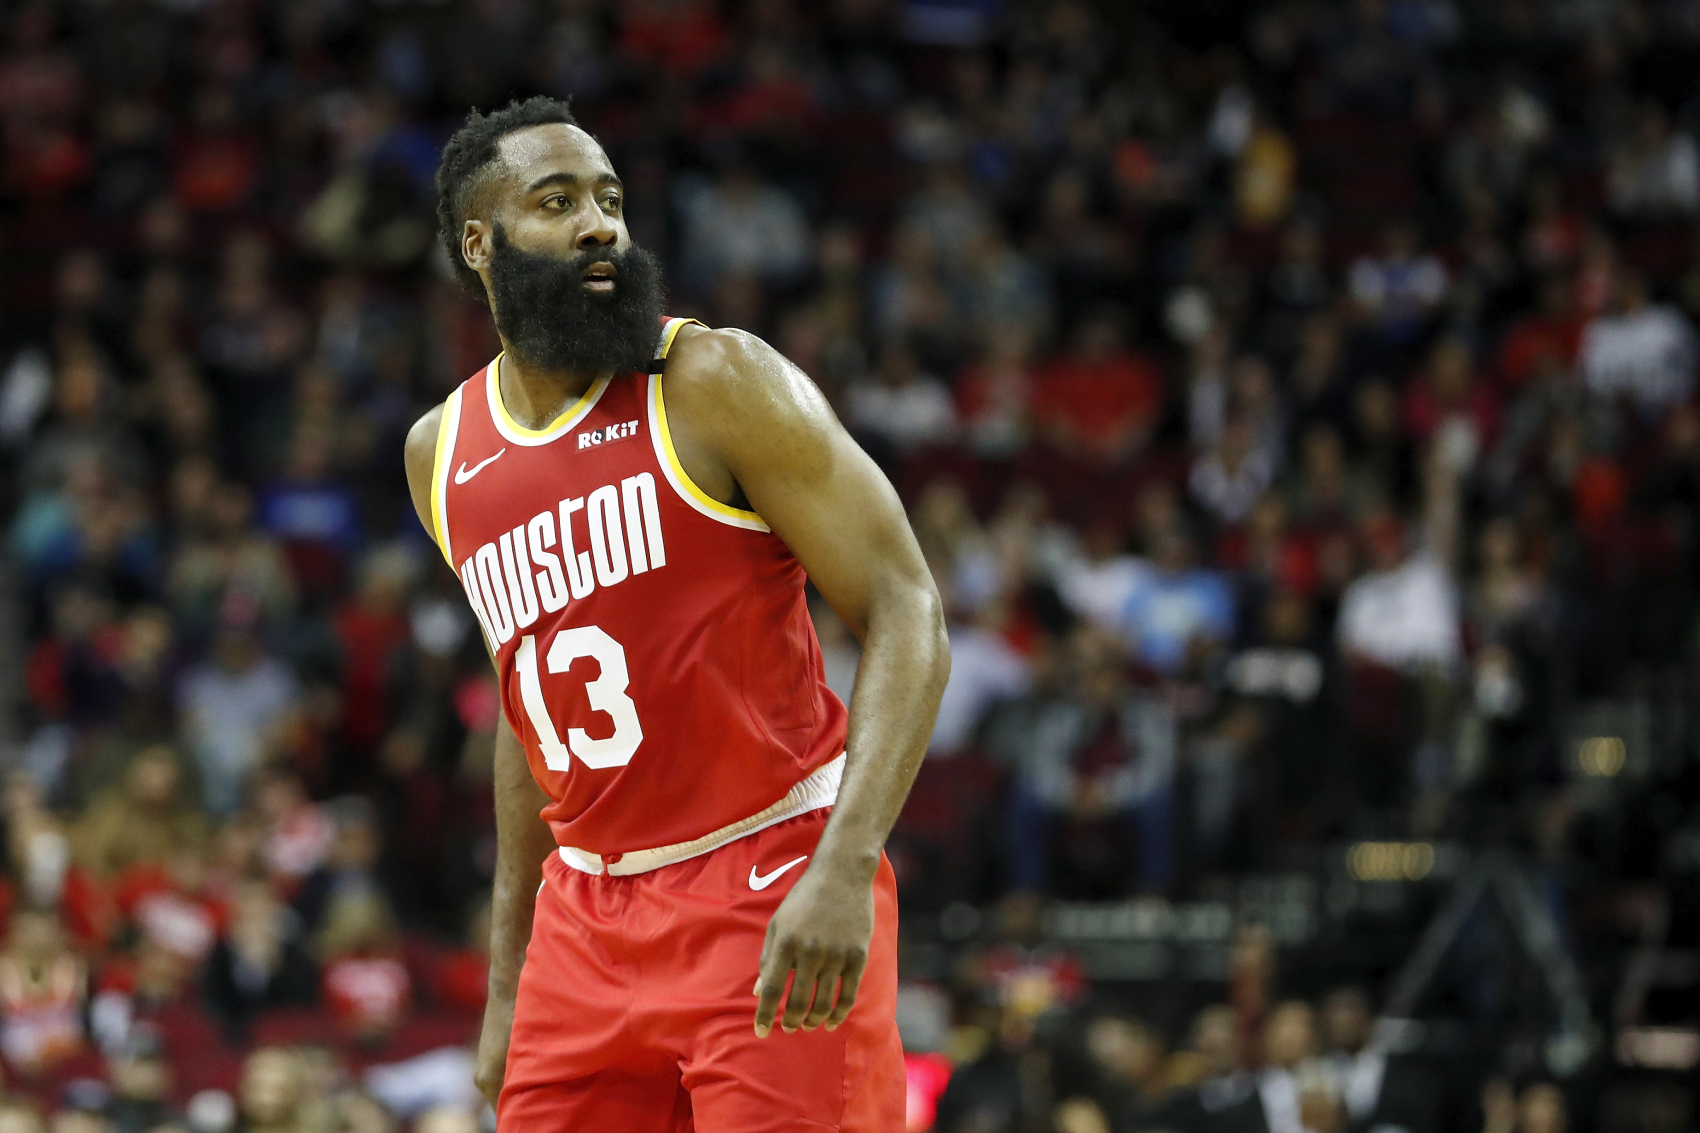 James Harden's future with the Houston Rockets is very unclear. However, Rockets coach Stephen Silas recently sent a strong message about it.